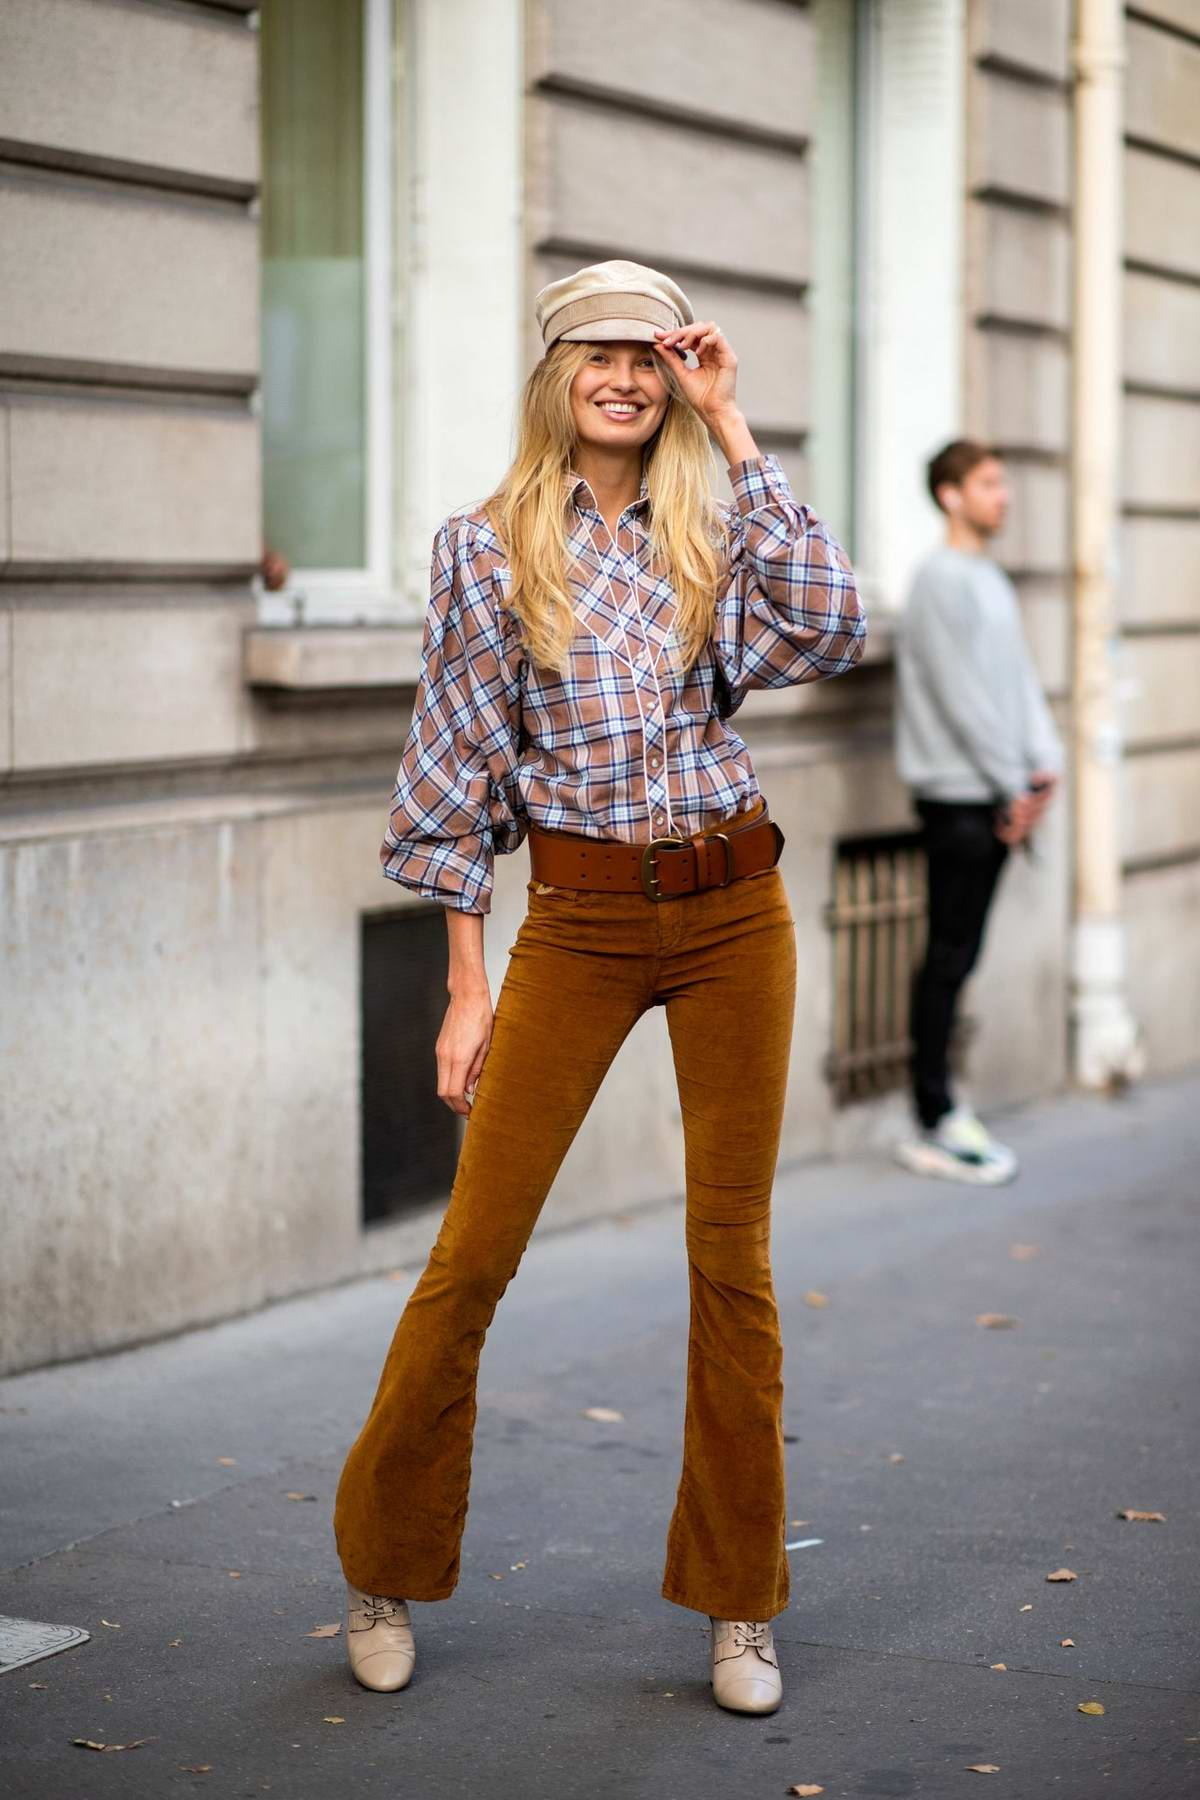 Romee Strijd steps out in a plaid shirt with flared brown jeans during Paris Fashion Week in Paris, France